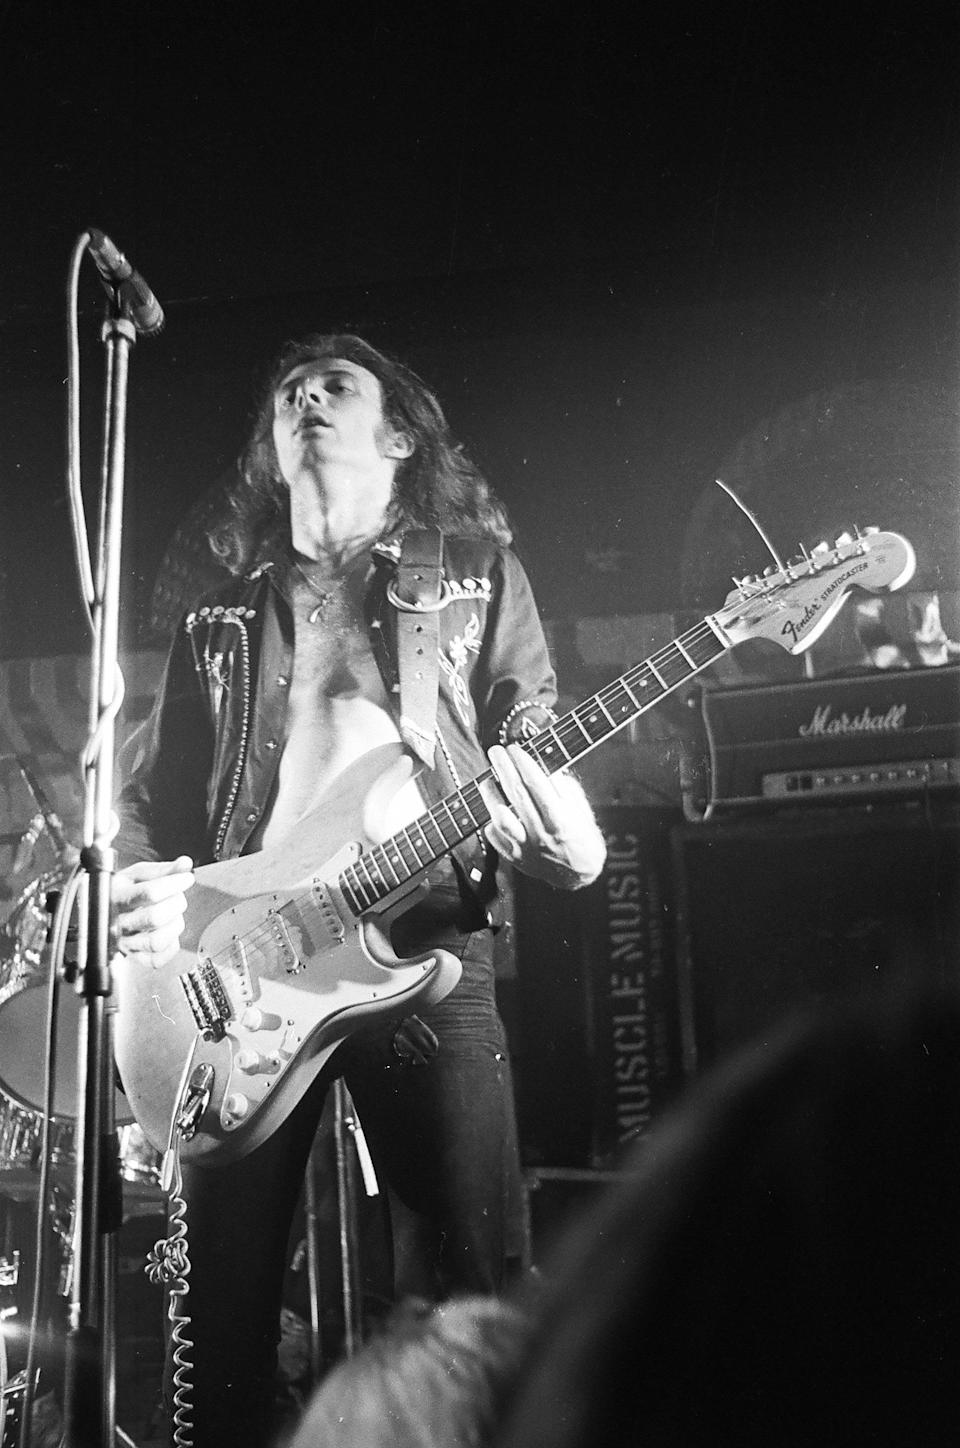 """<strong>Eddie Clarke</strong><br /><strong>Musician (b. 1950)</strong><br /><br />The former Motorhead guitarist, known to fans as 'Fast' Eddie Clarke, <a href=""""http://www.huffingtonpost.co.uk/entry/eddie-clarke-motorhead-dead-dies-guitarist_uk_5a576764e4b03bc4d03e8637"""">died at the age of 67 following a battle with pneumonia</a>.Hejoined the rock band in 1976but left in 1982 following the release of fifth album 'Iron Fist', after he was reportedly unhappy with how that album turned out."""